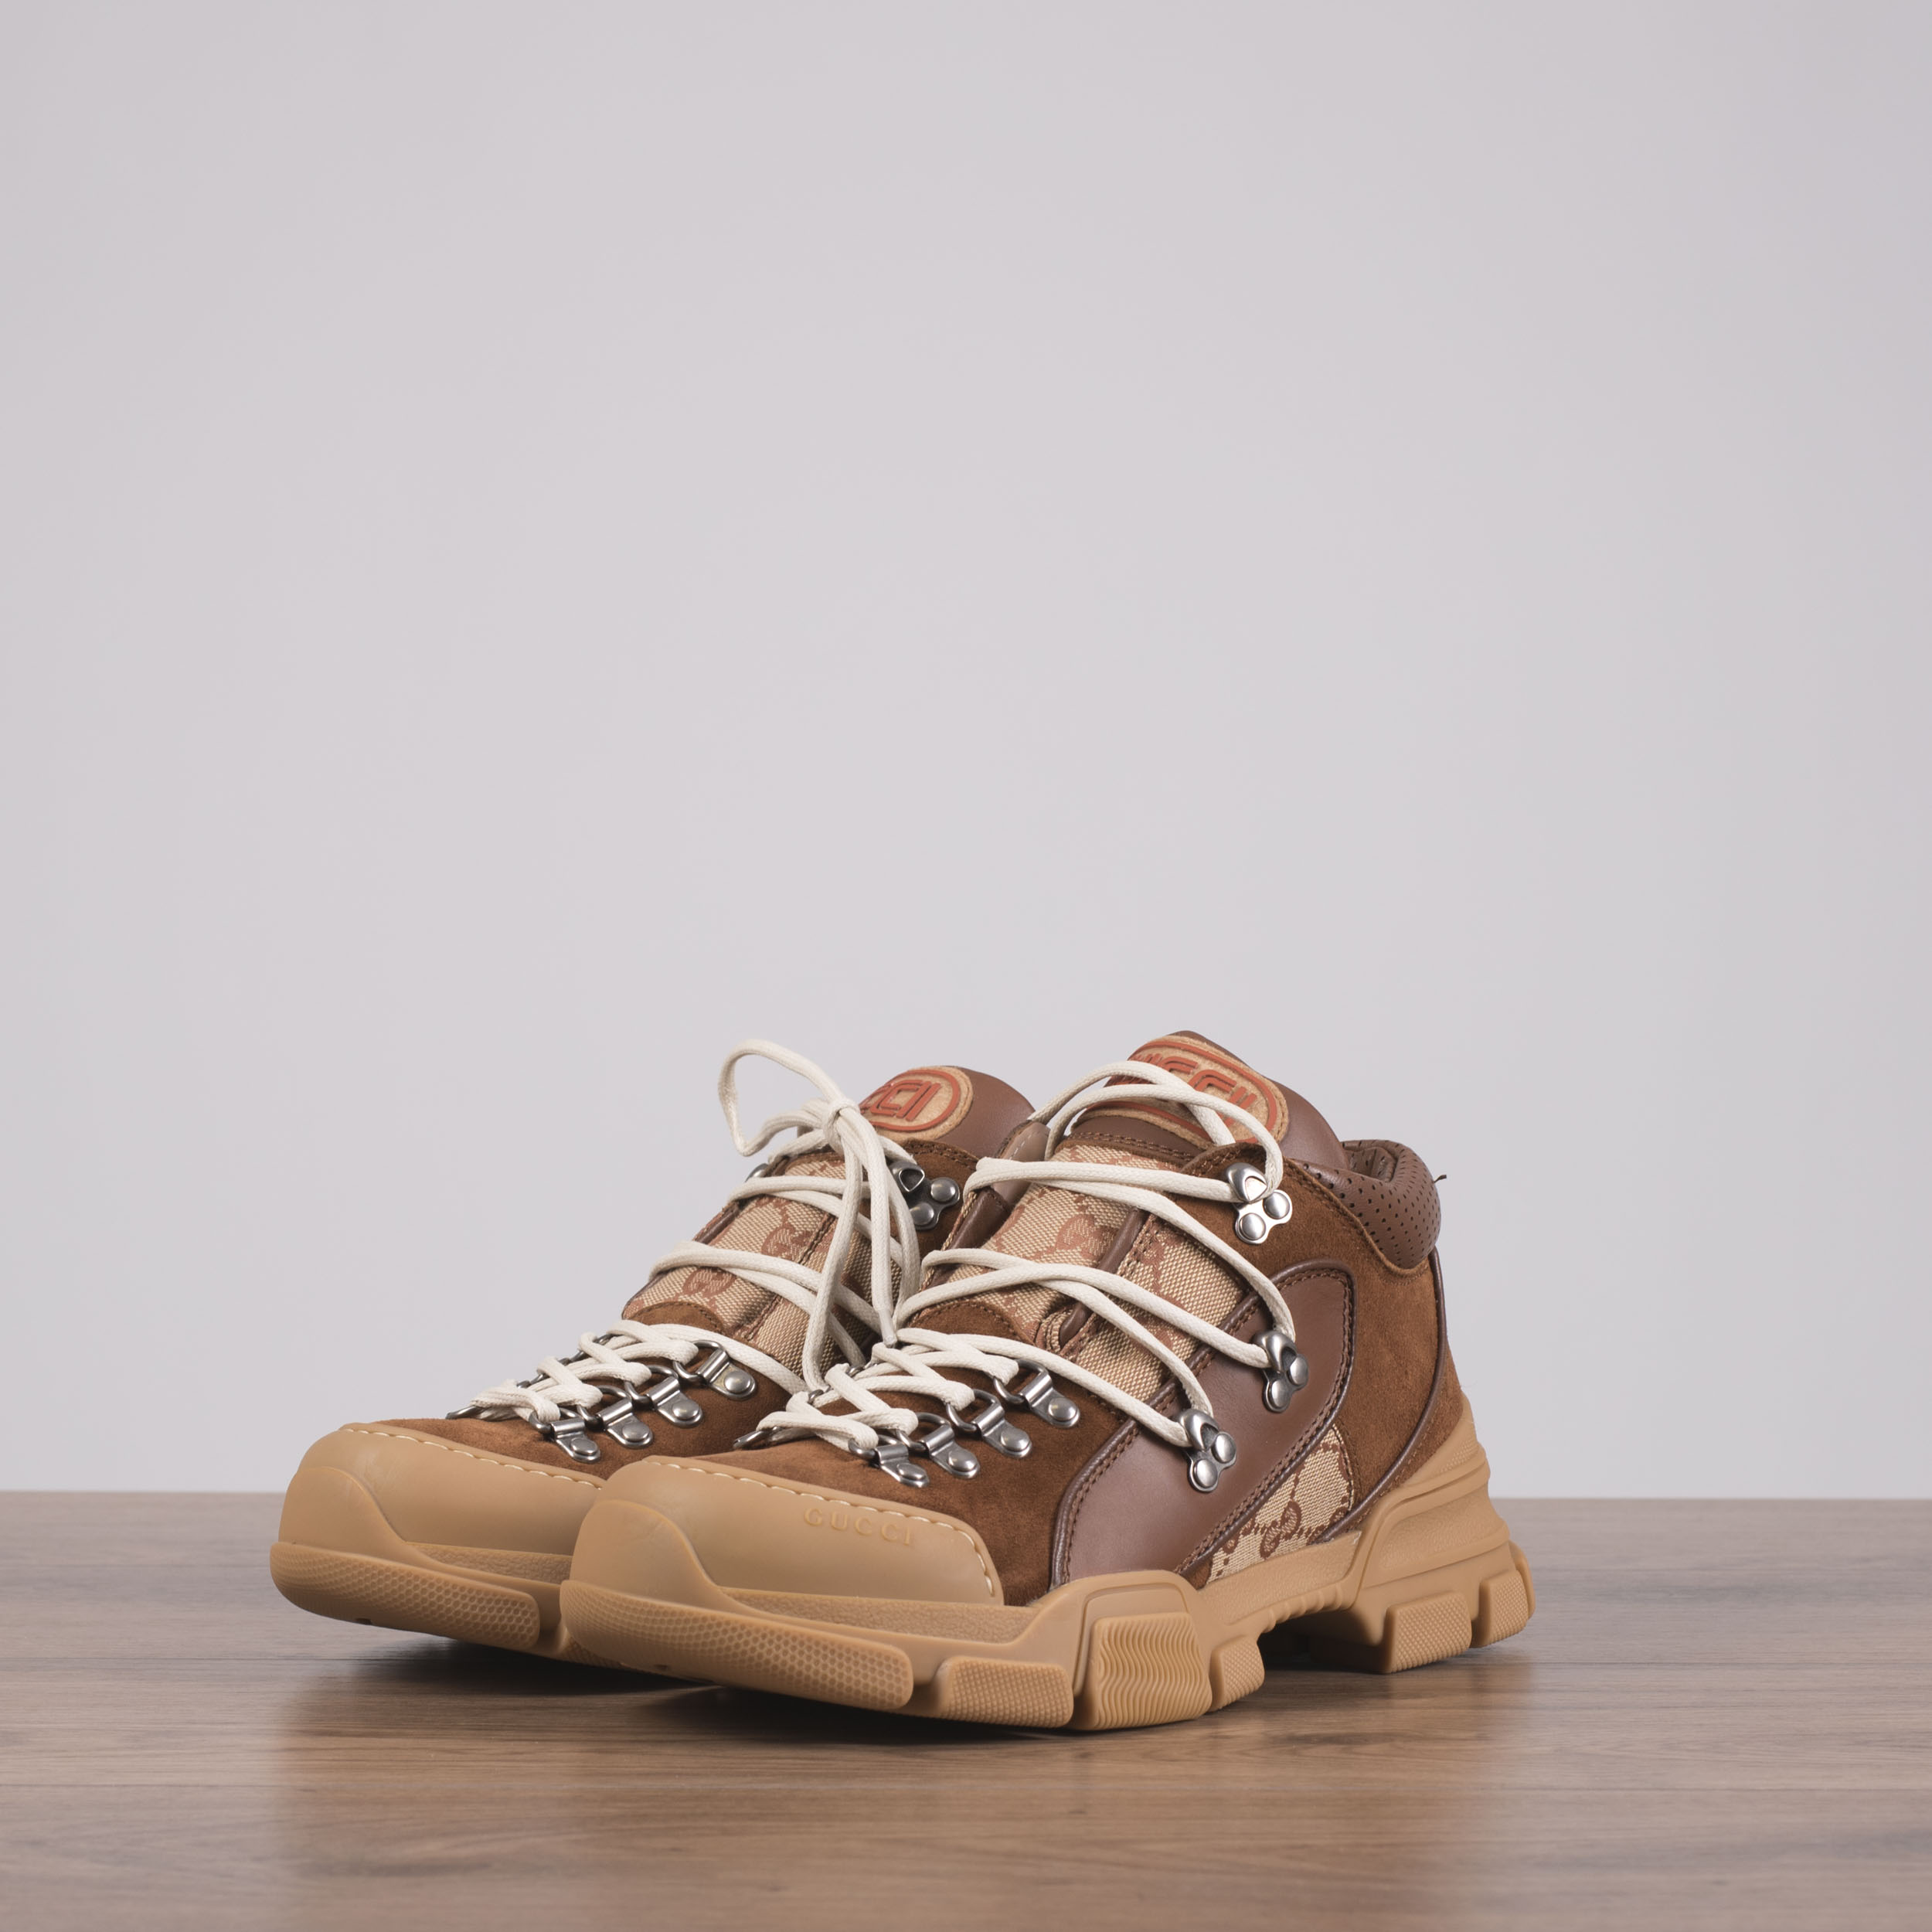 1bc5ba4a2 Details about GUCCI x SEGA 980$ Flashtrek Sneakers In Brown GG Canvas,  Leather & Suede